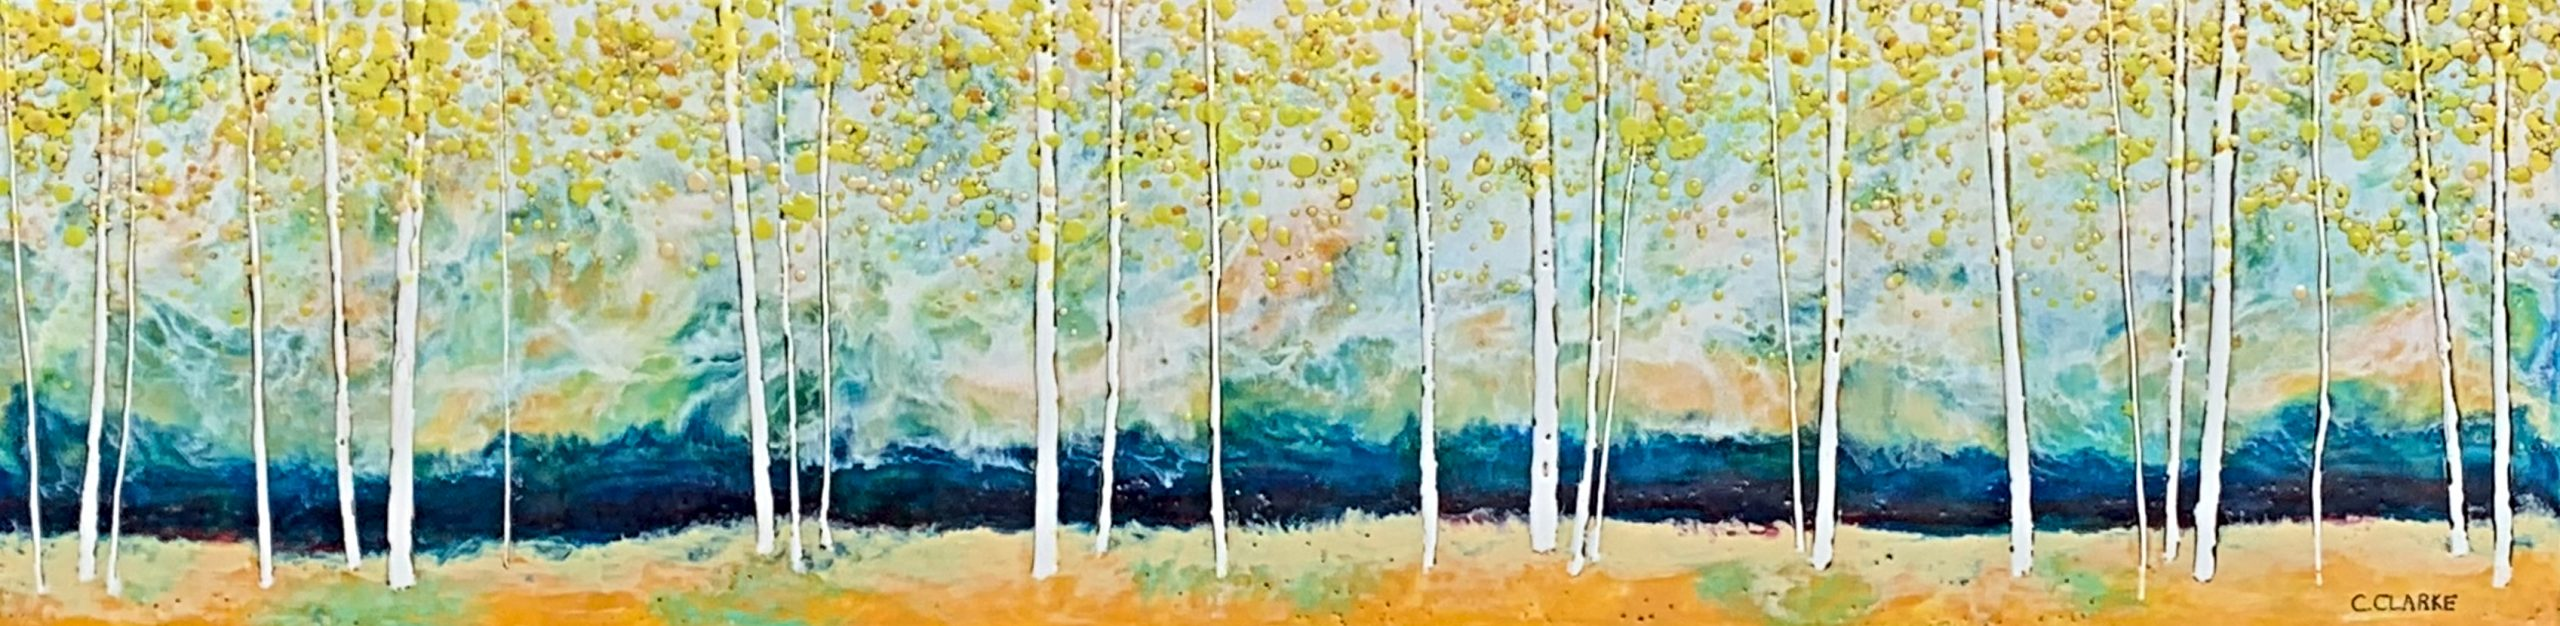 Field Day, encaustic landscape painting by Catharine Clarke | Effusion Art Gallery + Cast Glass Studio, Invermere BC